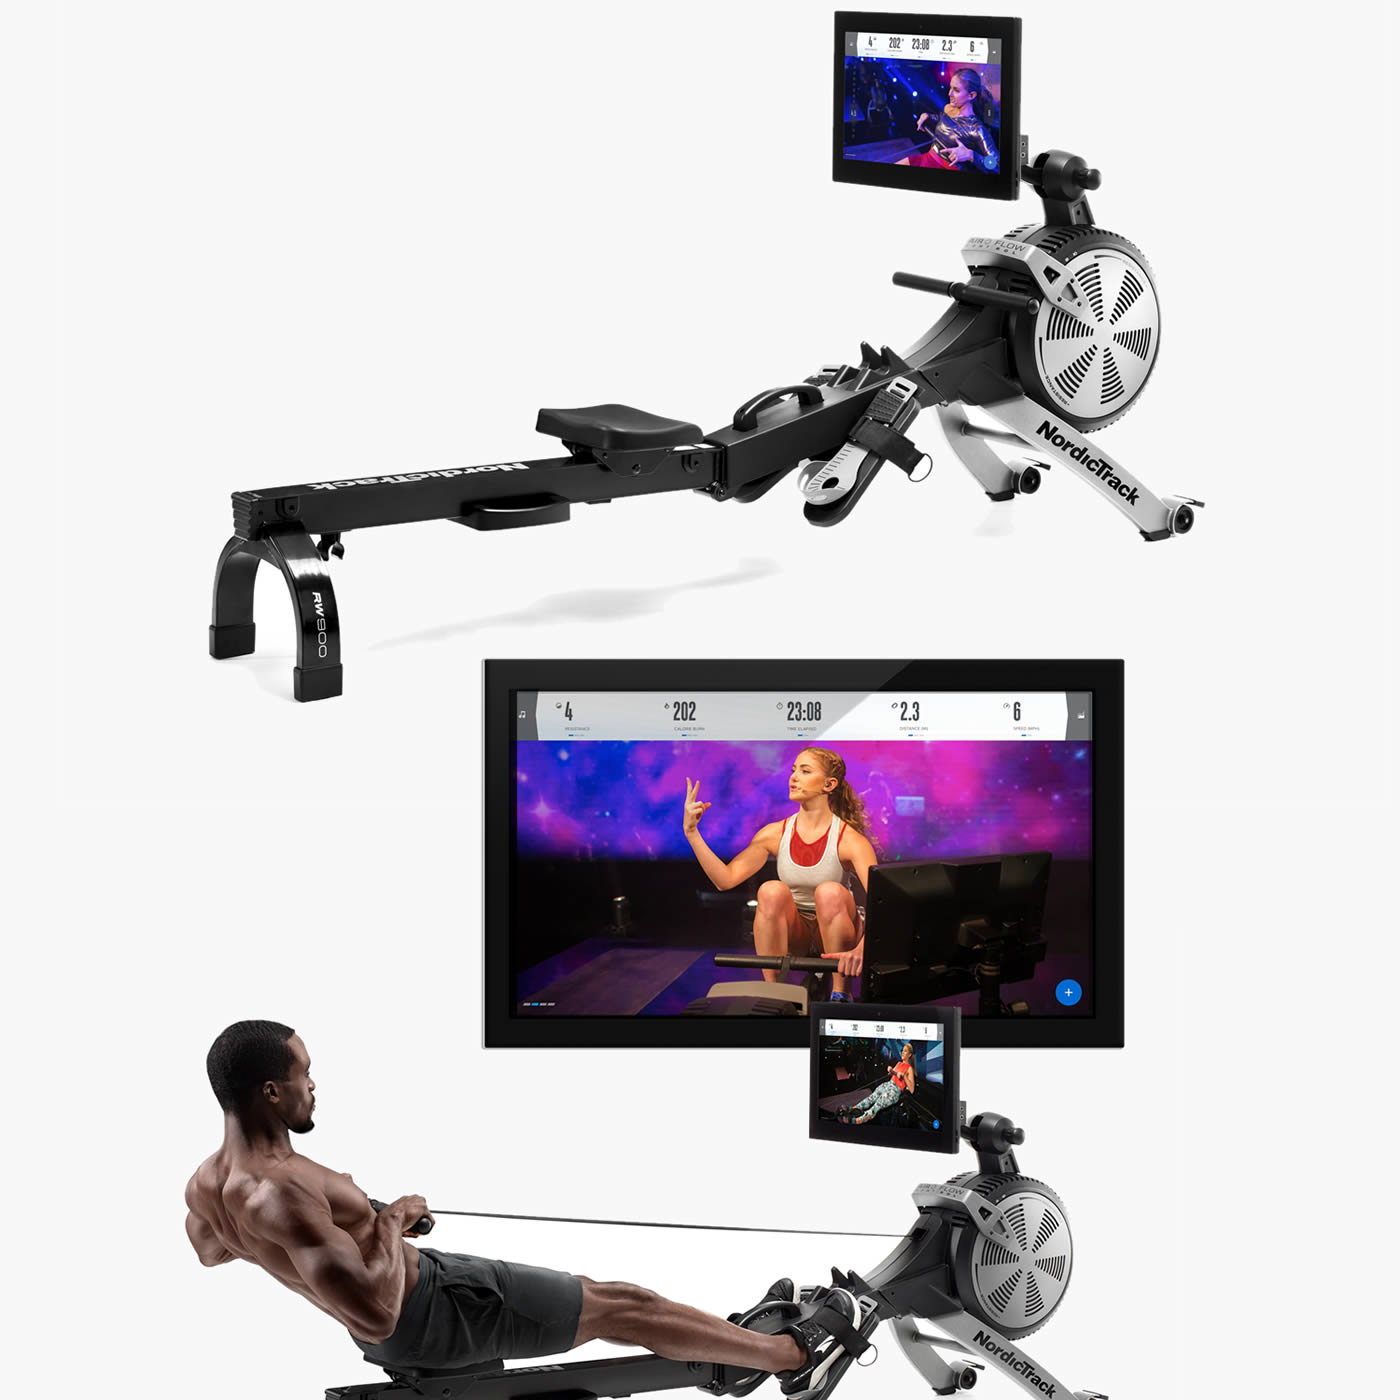 Nordictrack RW900 Rowing machine  Featuring streamed iFit Classes led by Alex Silver-Fagan